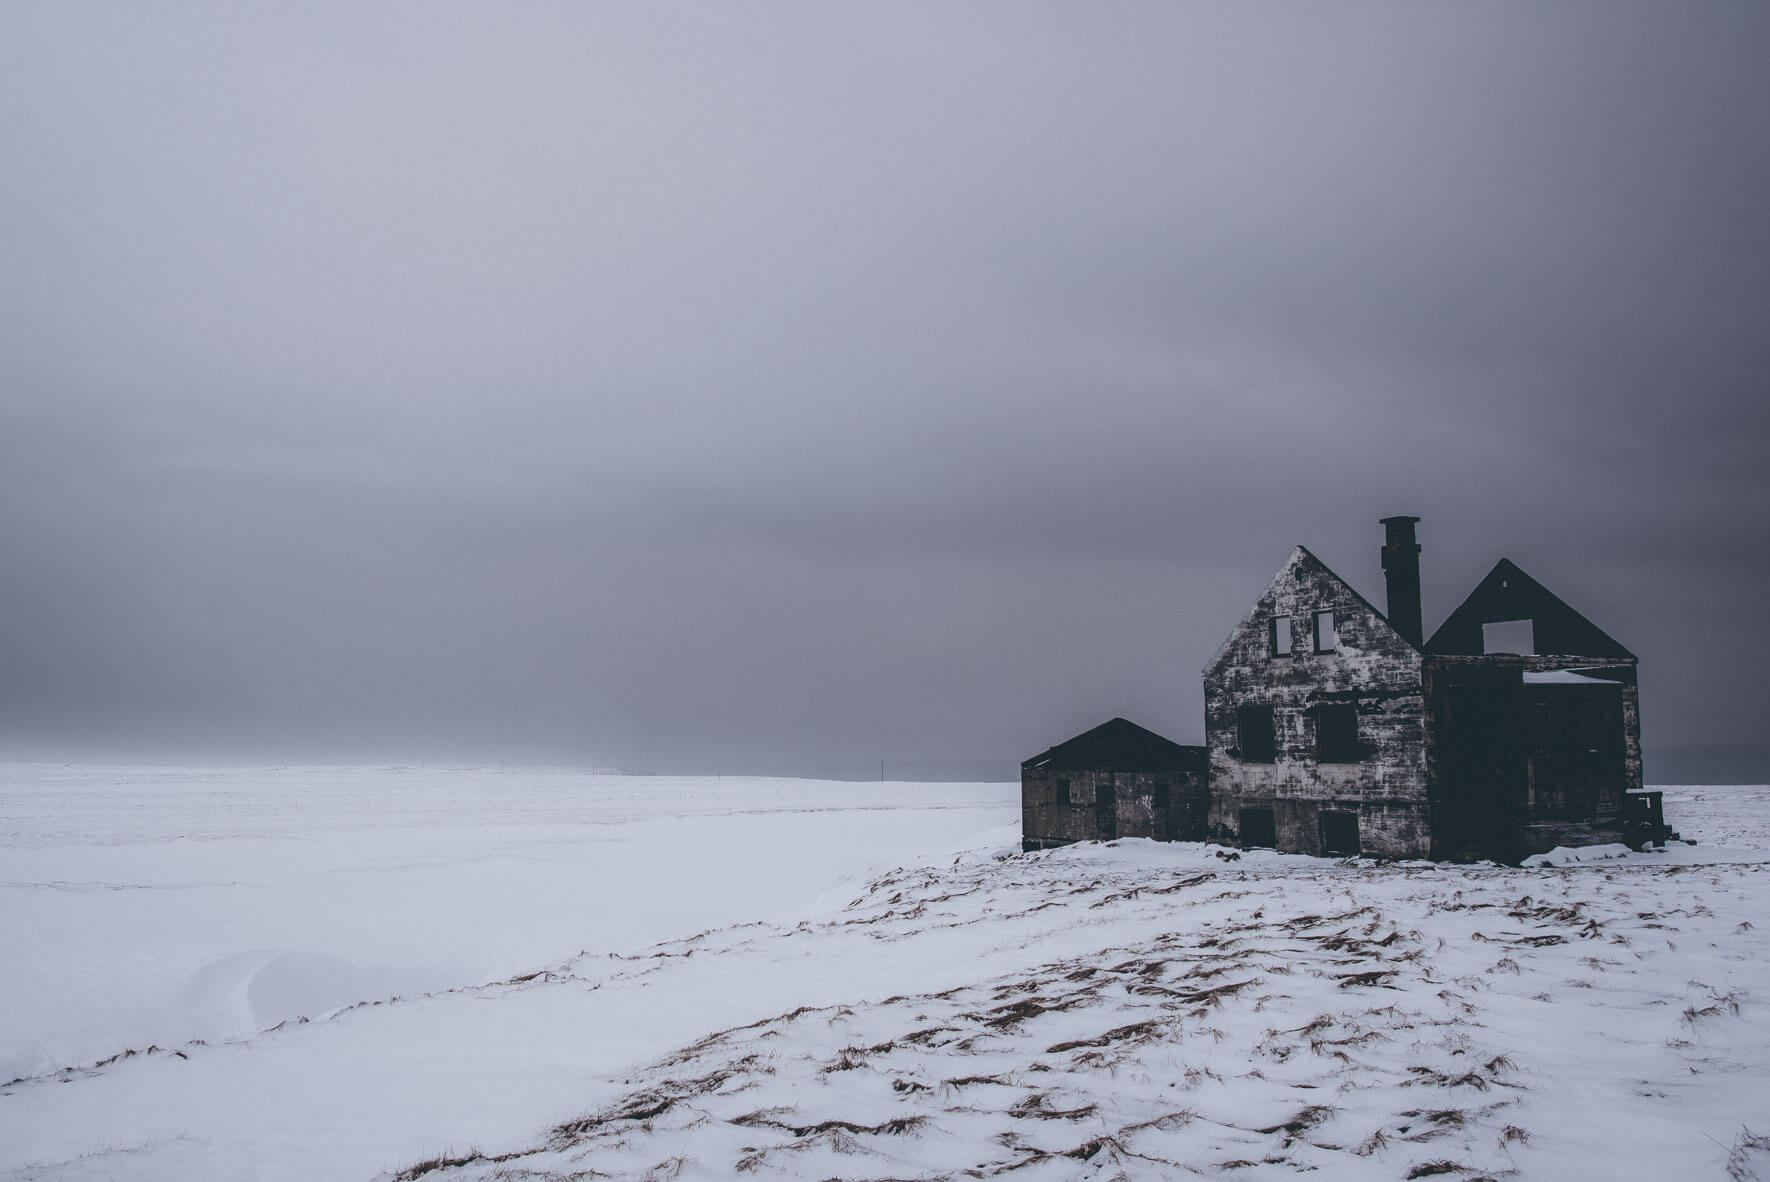 Northlandscapes Photography – Atmospheric landscape photography of the North by Jan Erik Waider